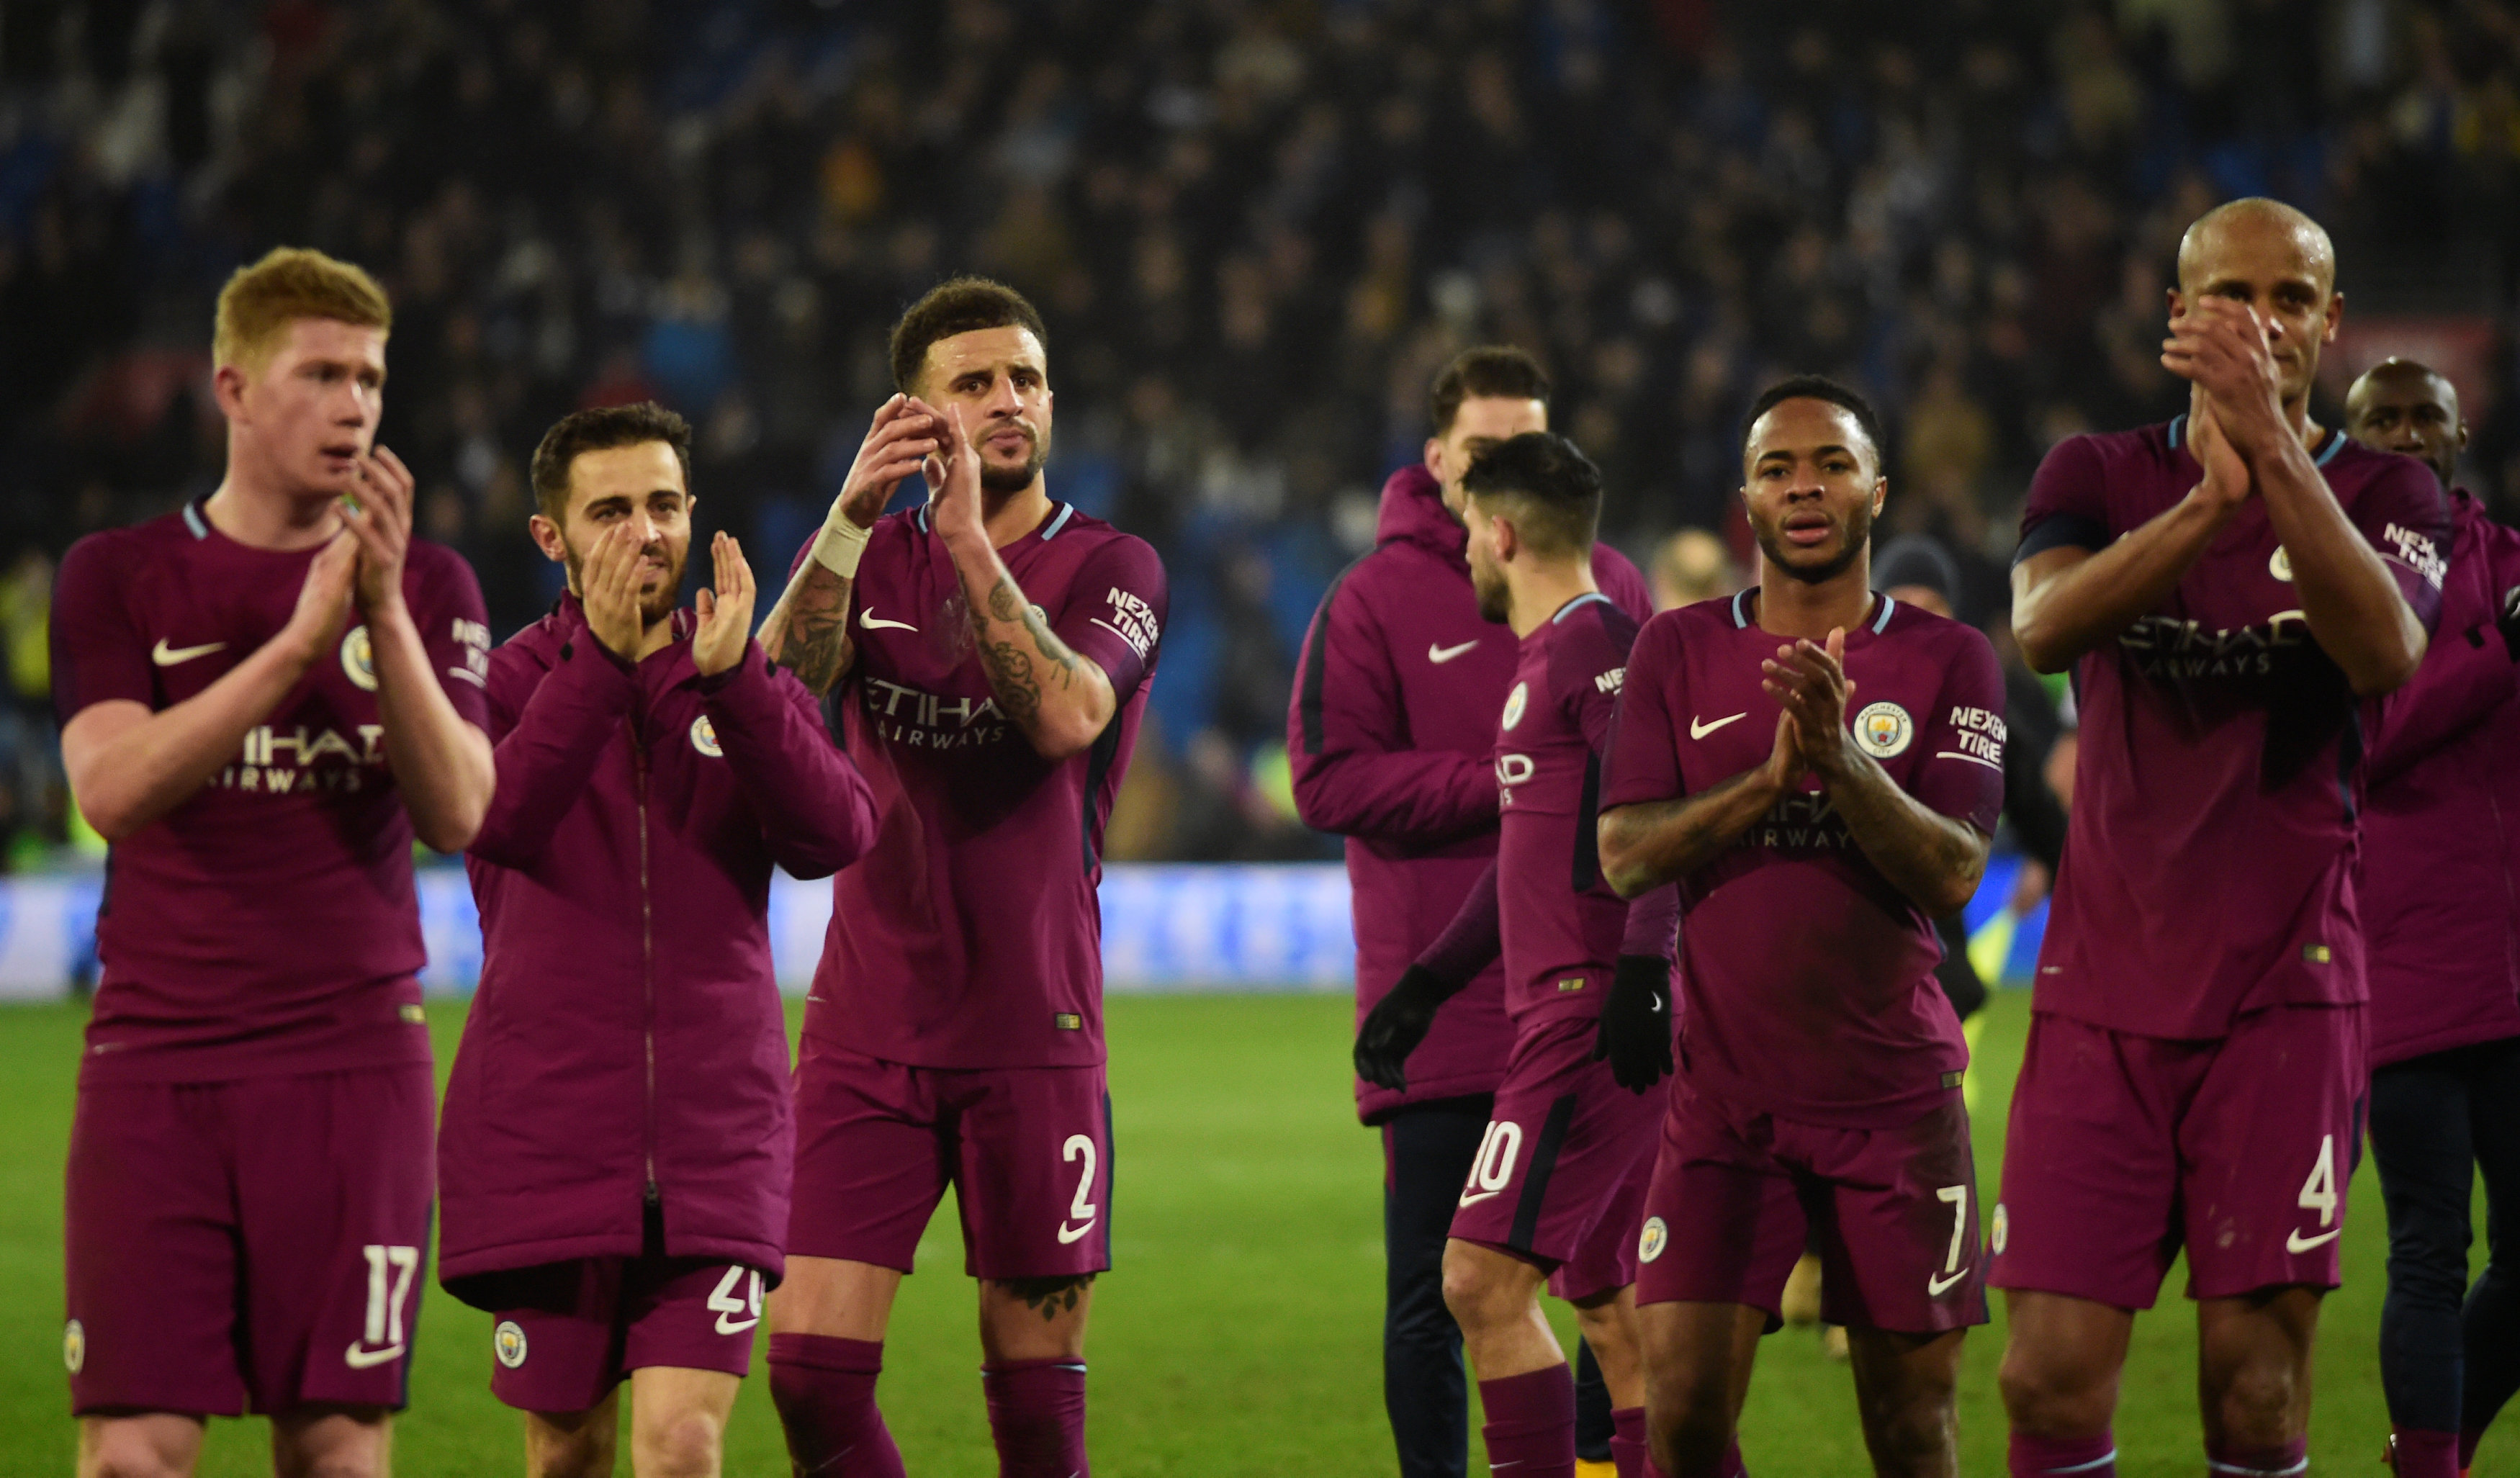 Football: Classy City breeze past Cardiff in FA Cup